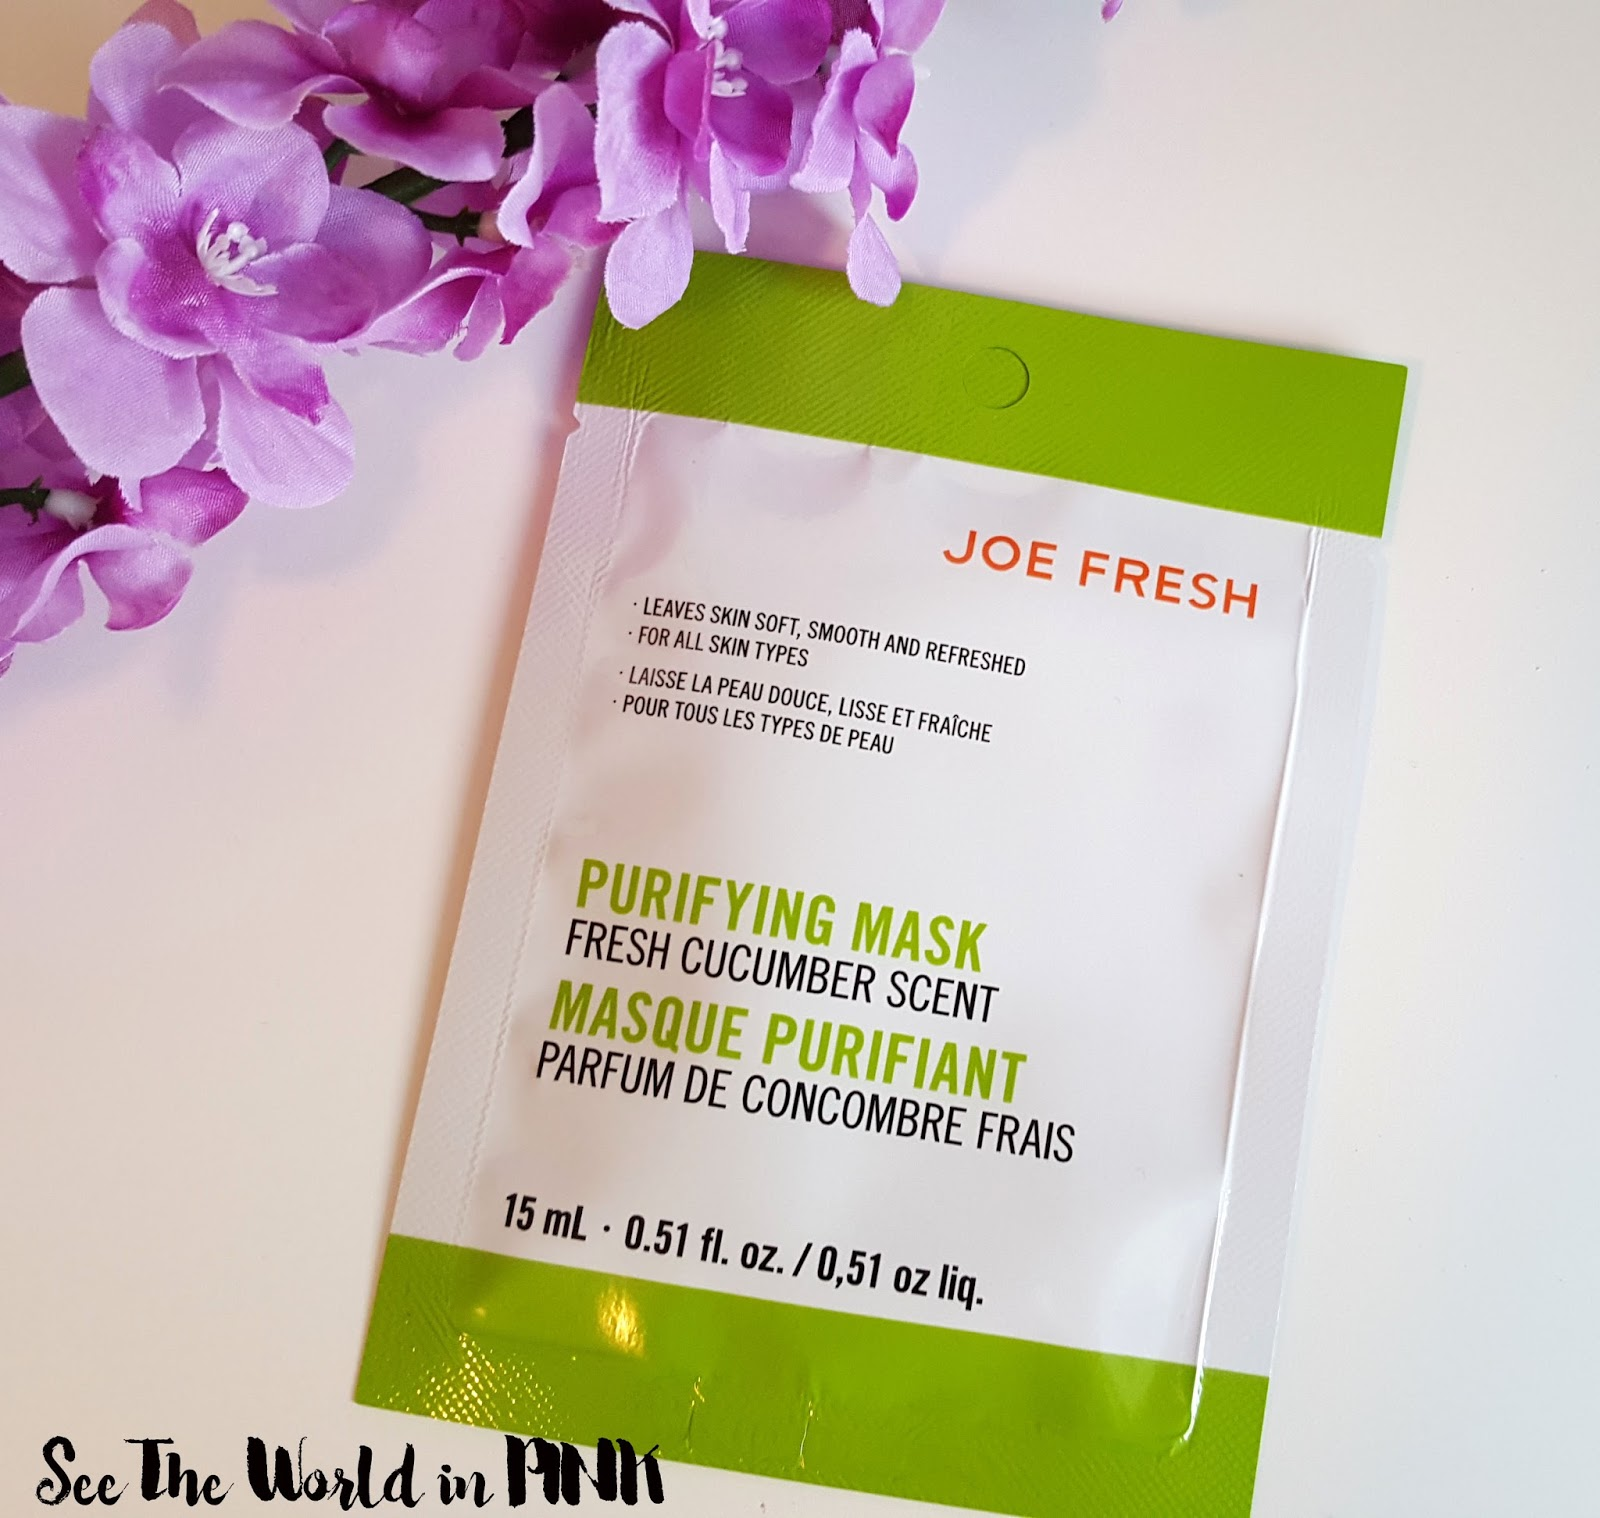 Joe Fresh Purifying Mask Fresh Cucumber Scent Review